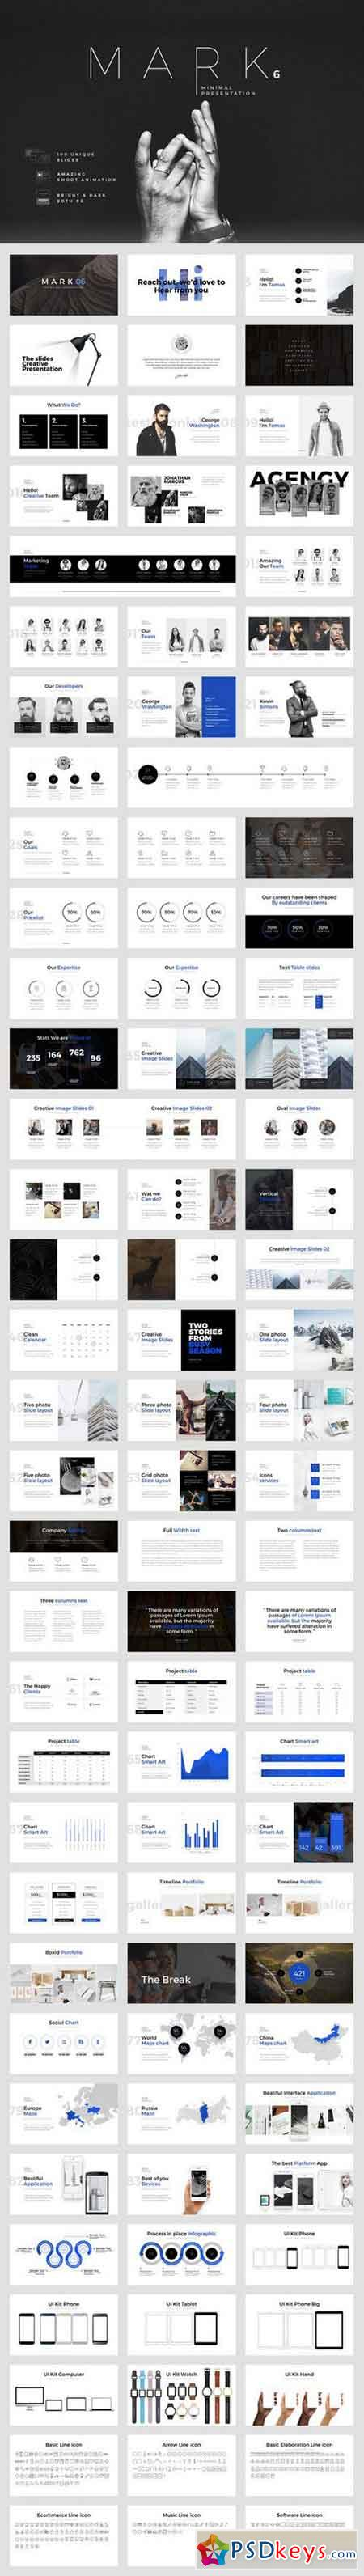 Mark06-Minimal Powerpoint Template 796263